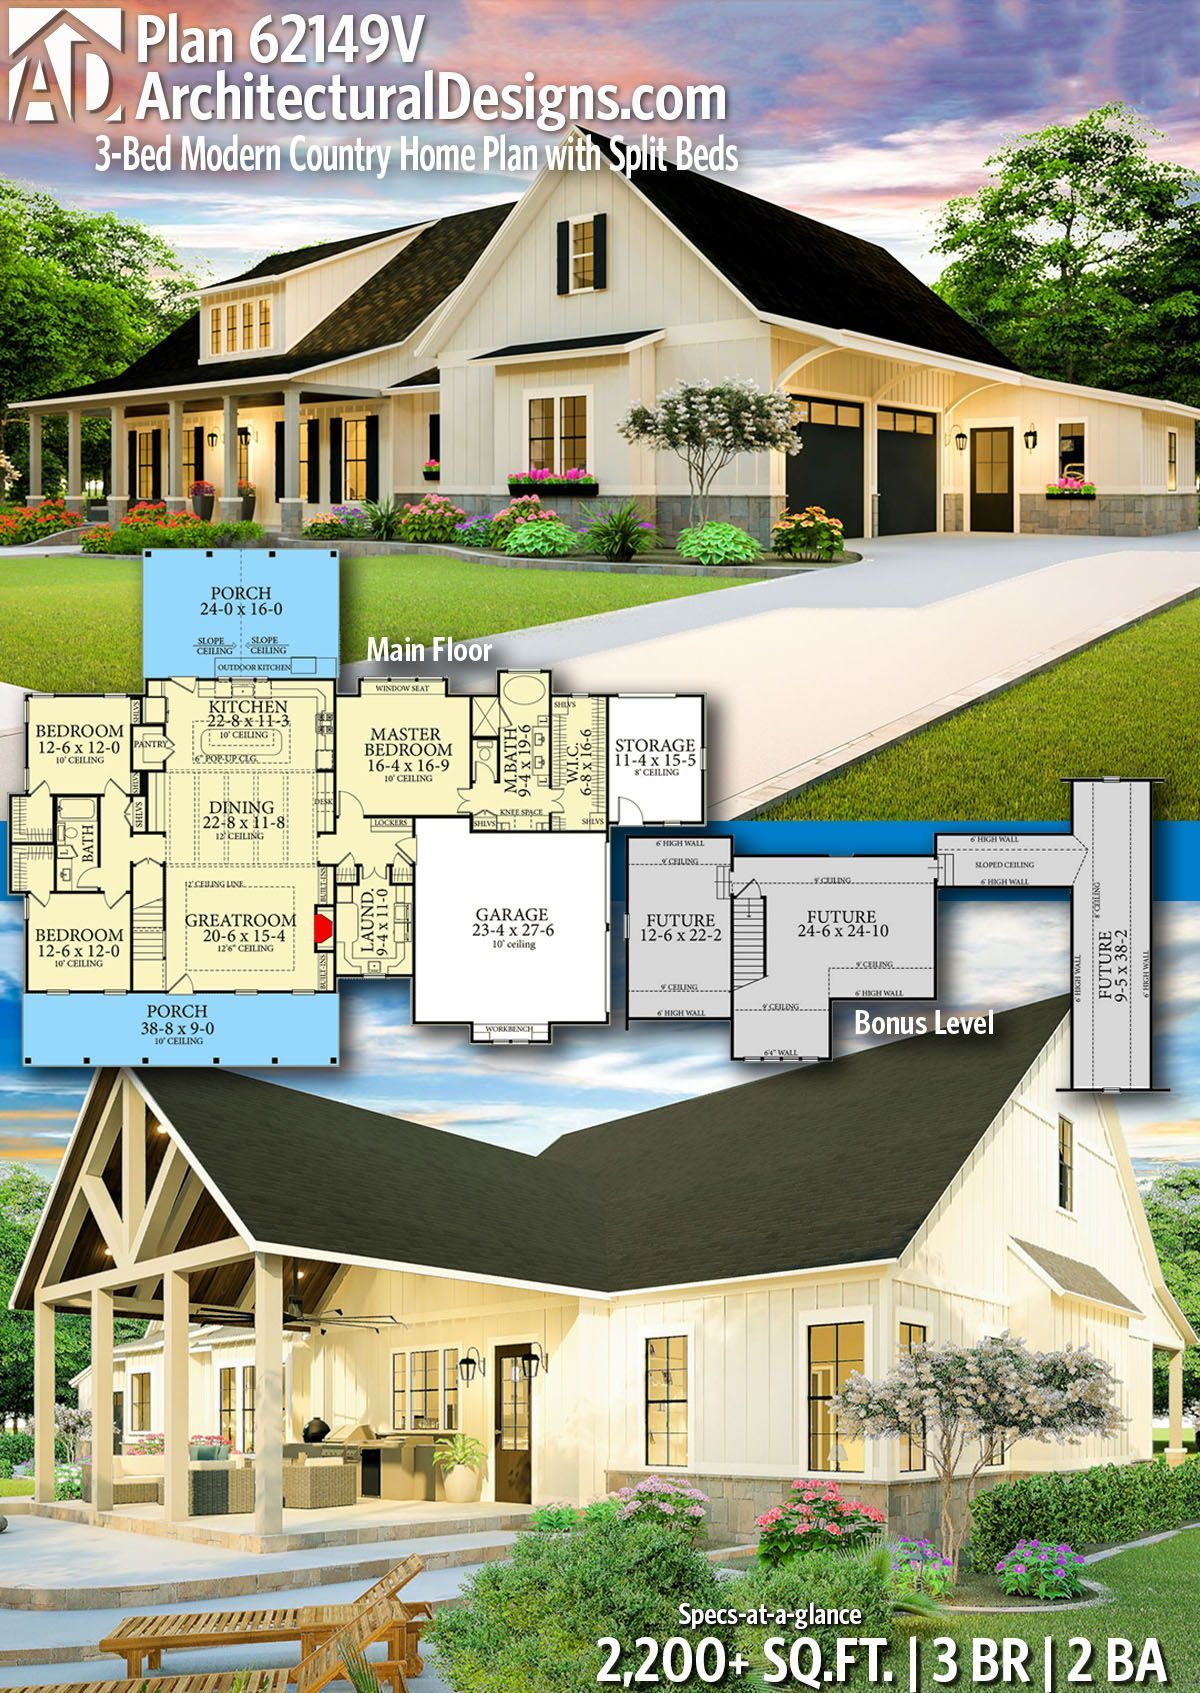 Plan 62149v 3 Bed Modern Country Home Plan With Split Beds Country House Plans House Plans Farmhouse Dream House Plans